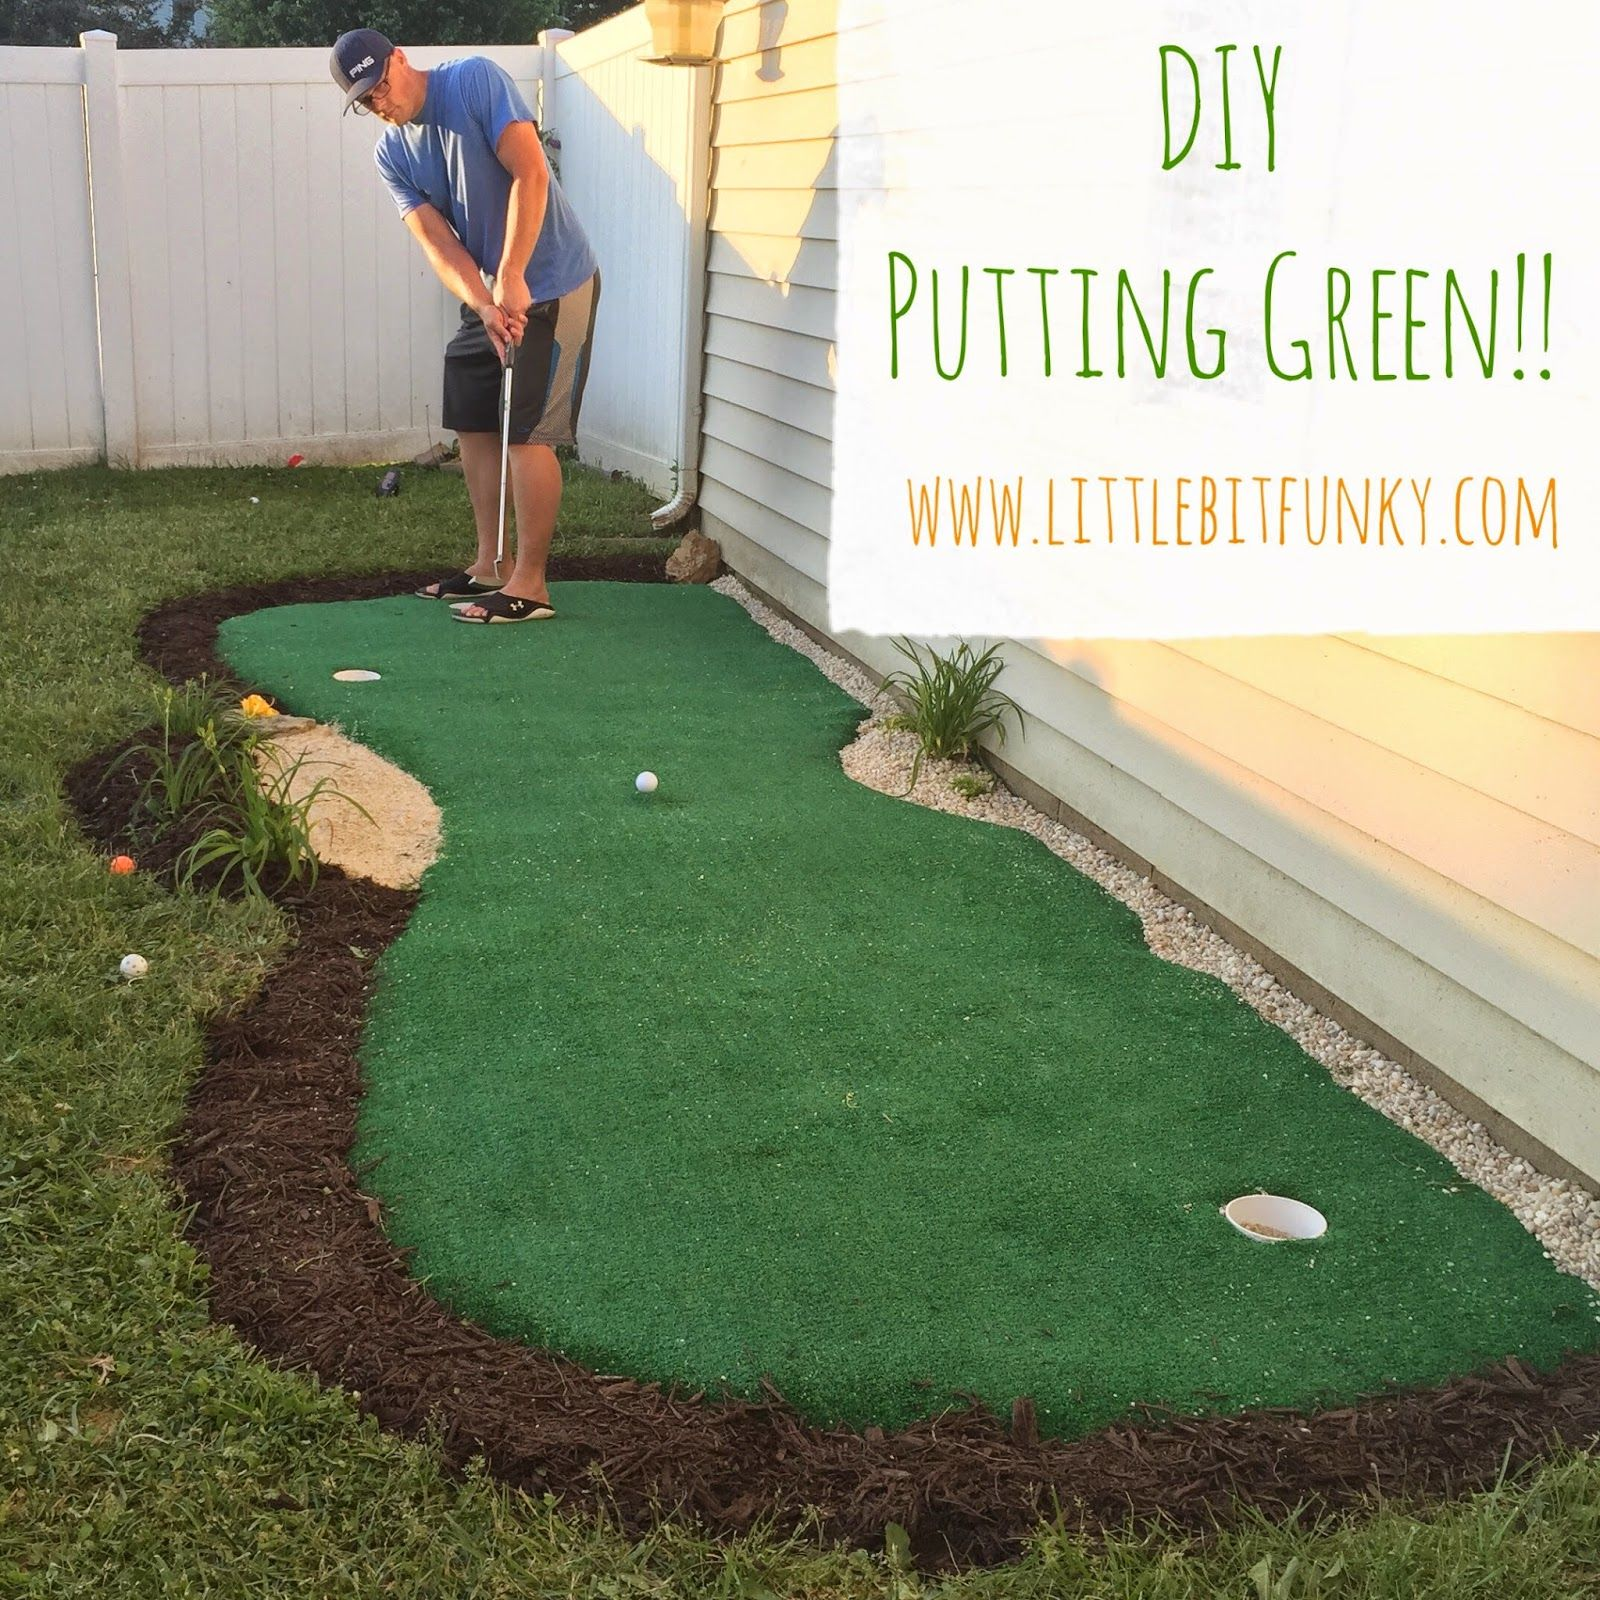 How To Make A Backyard Putting Green! {DIY Putting Green